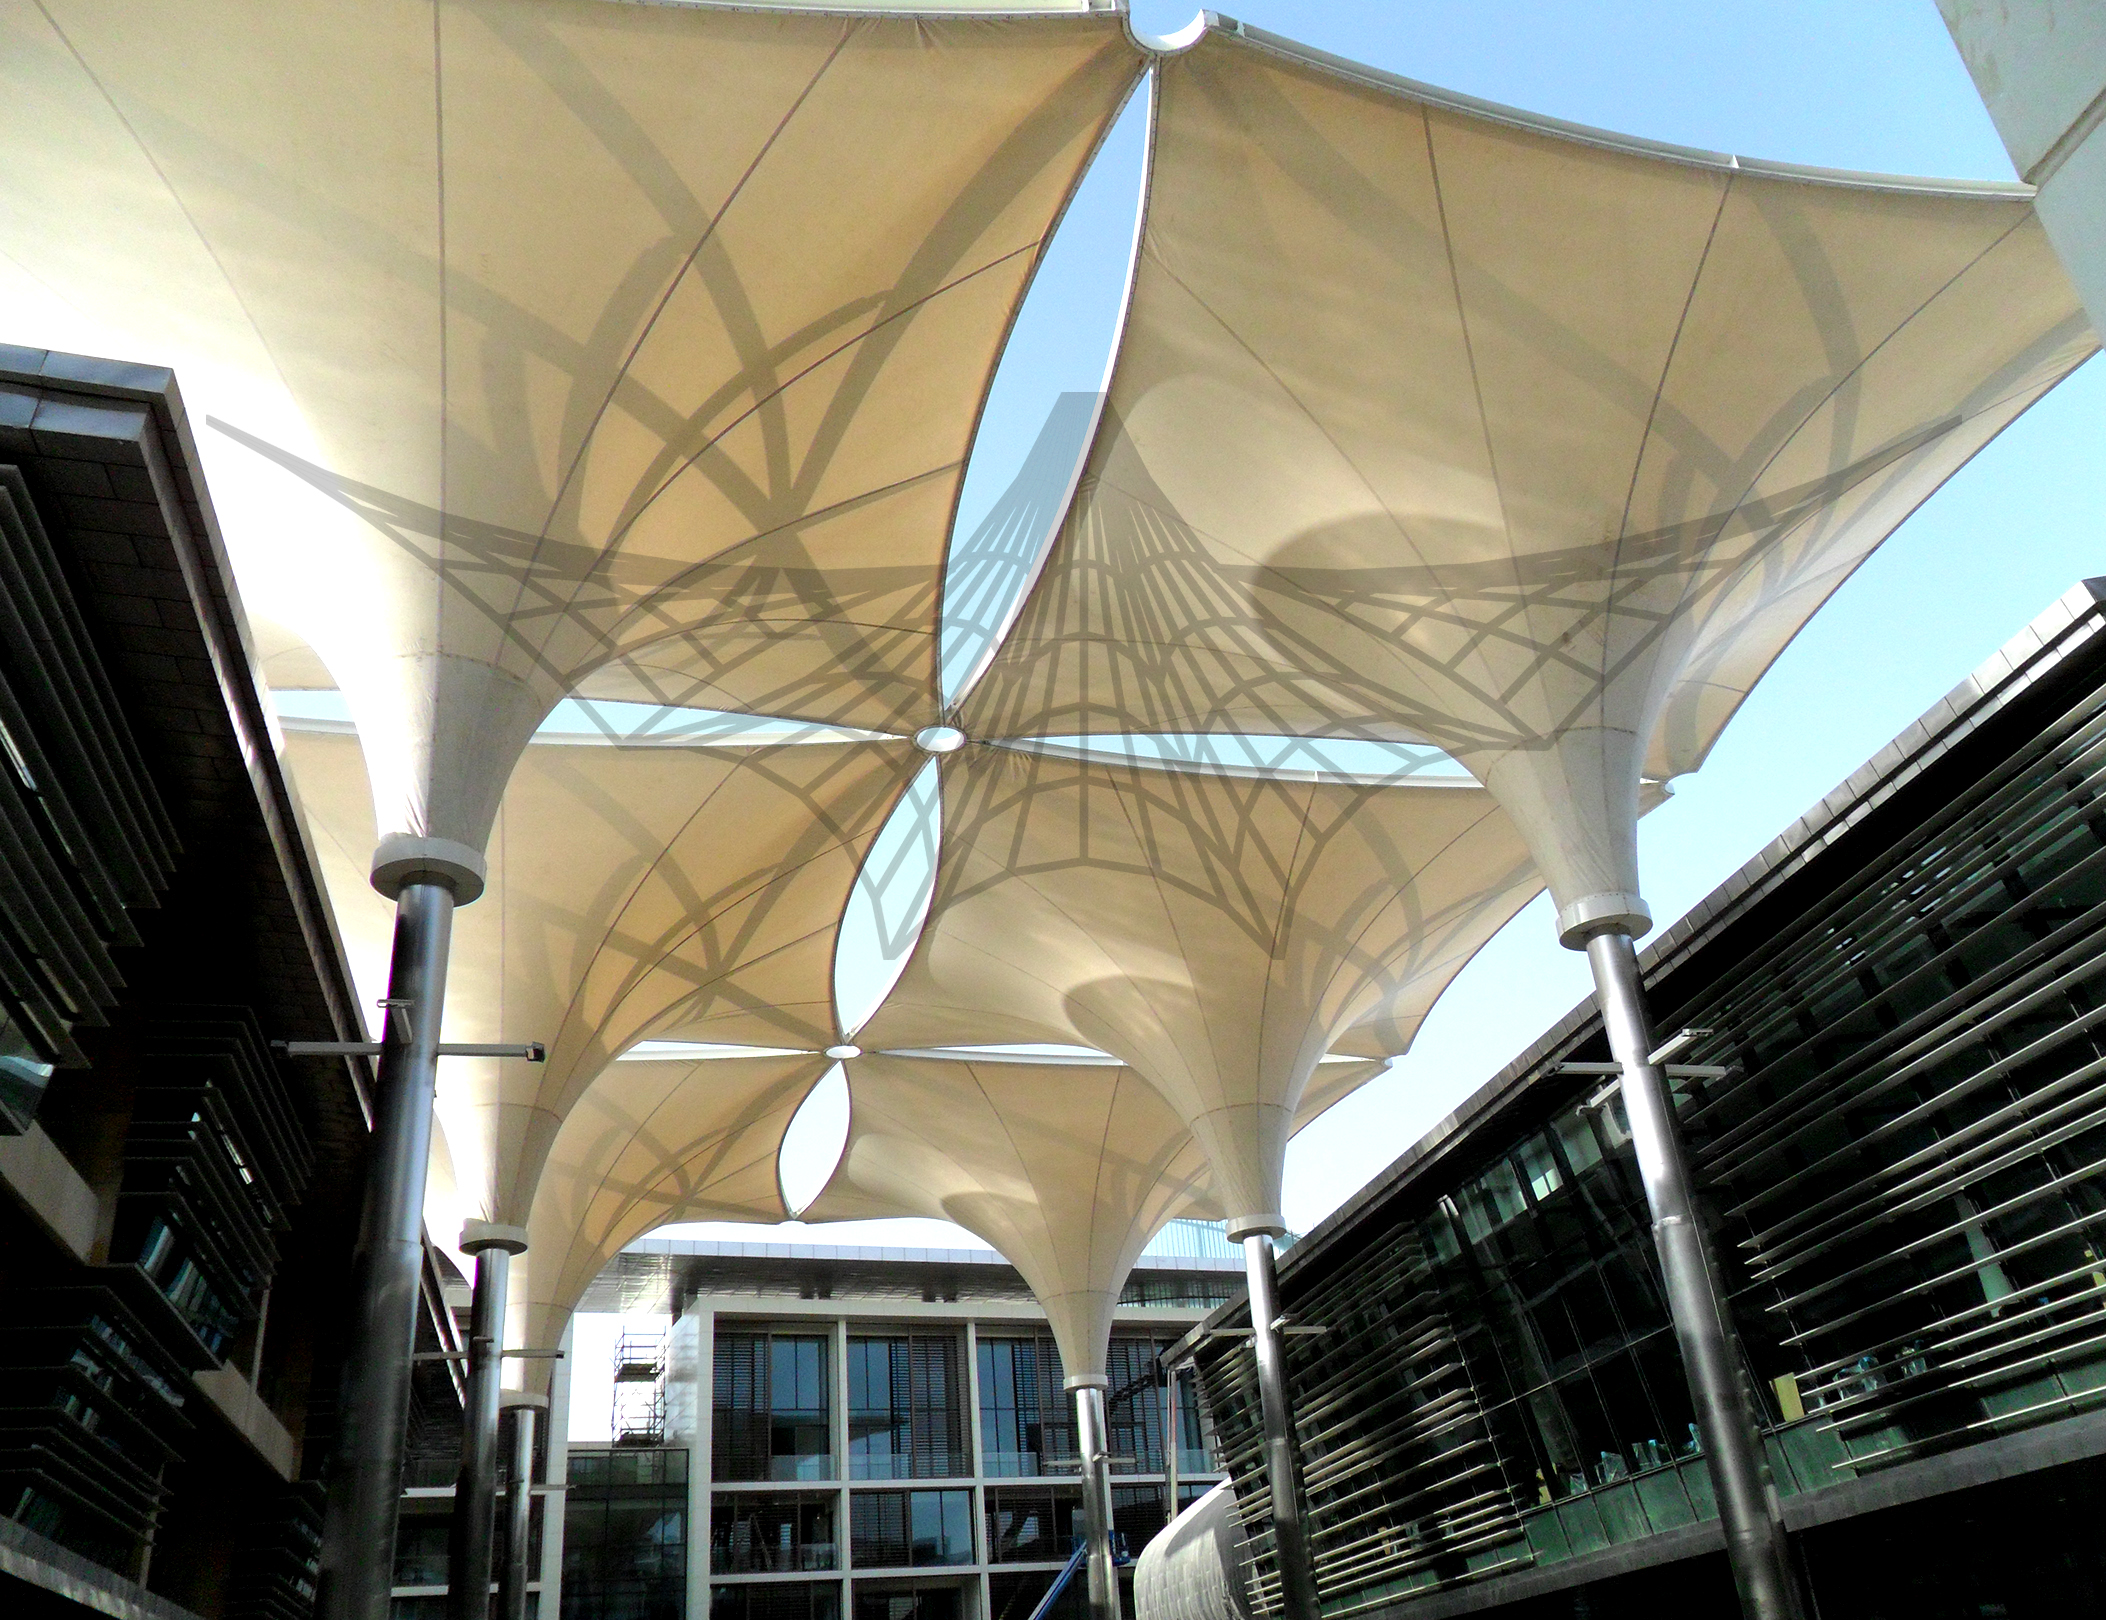 Technology expo would like to hire event staff to erect huge tensile structure.